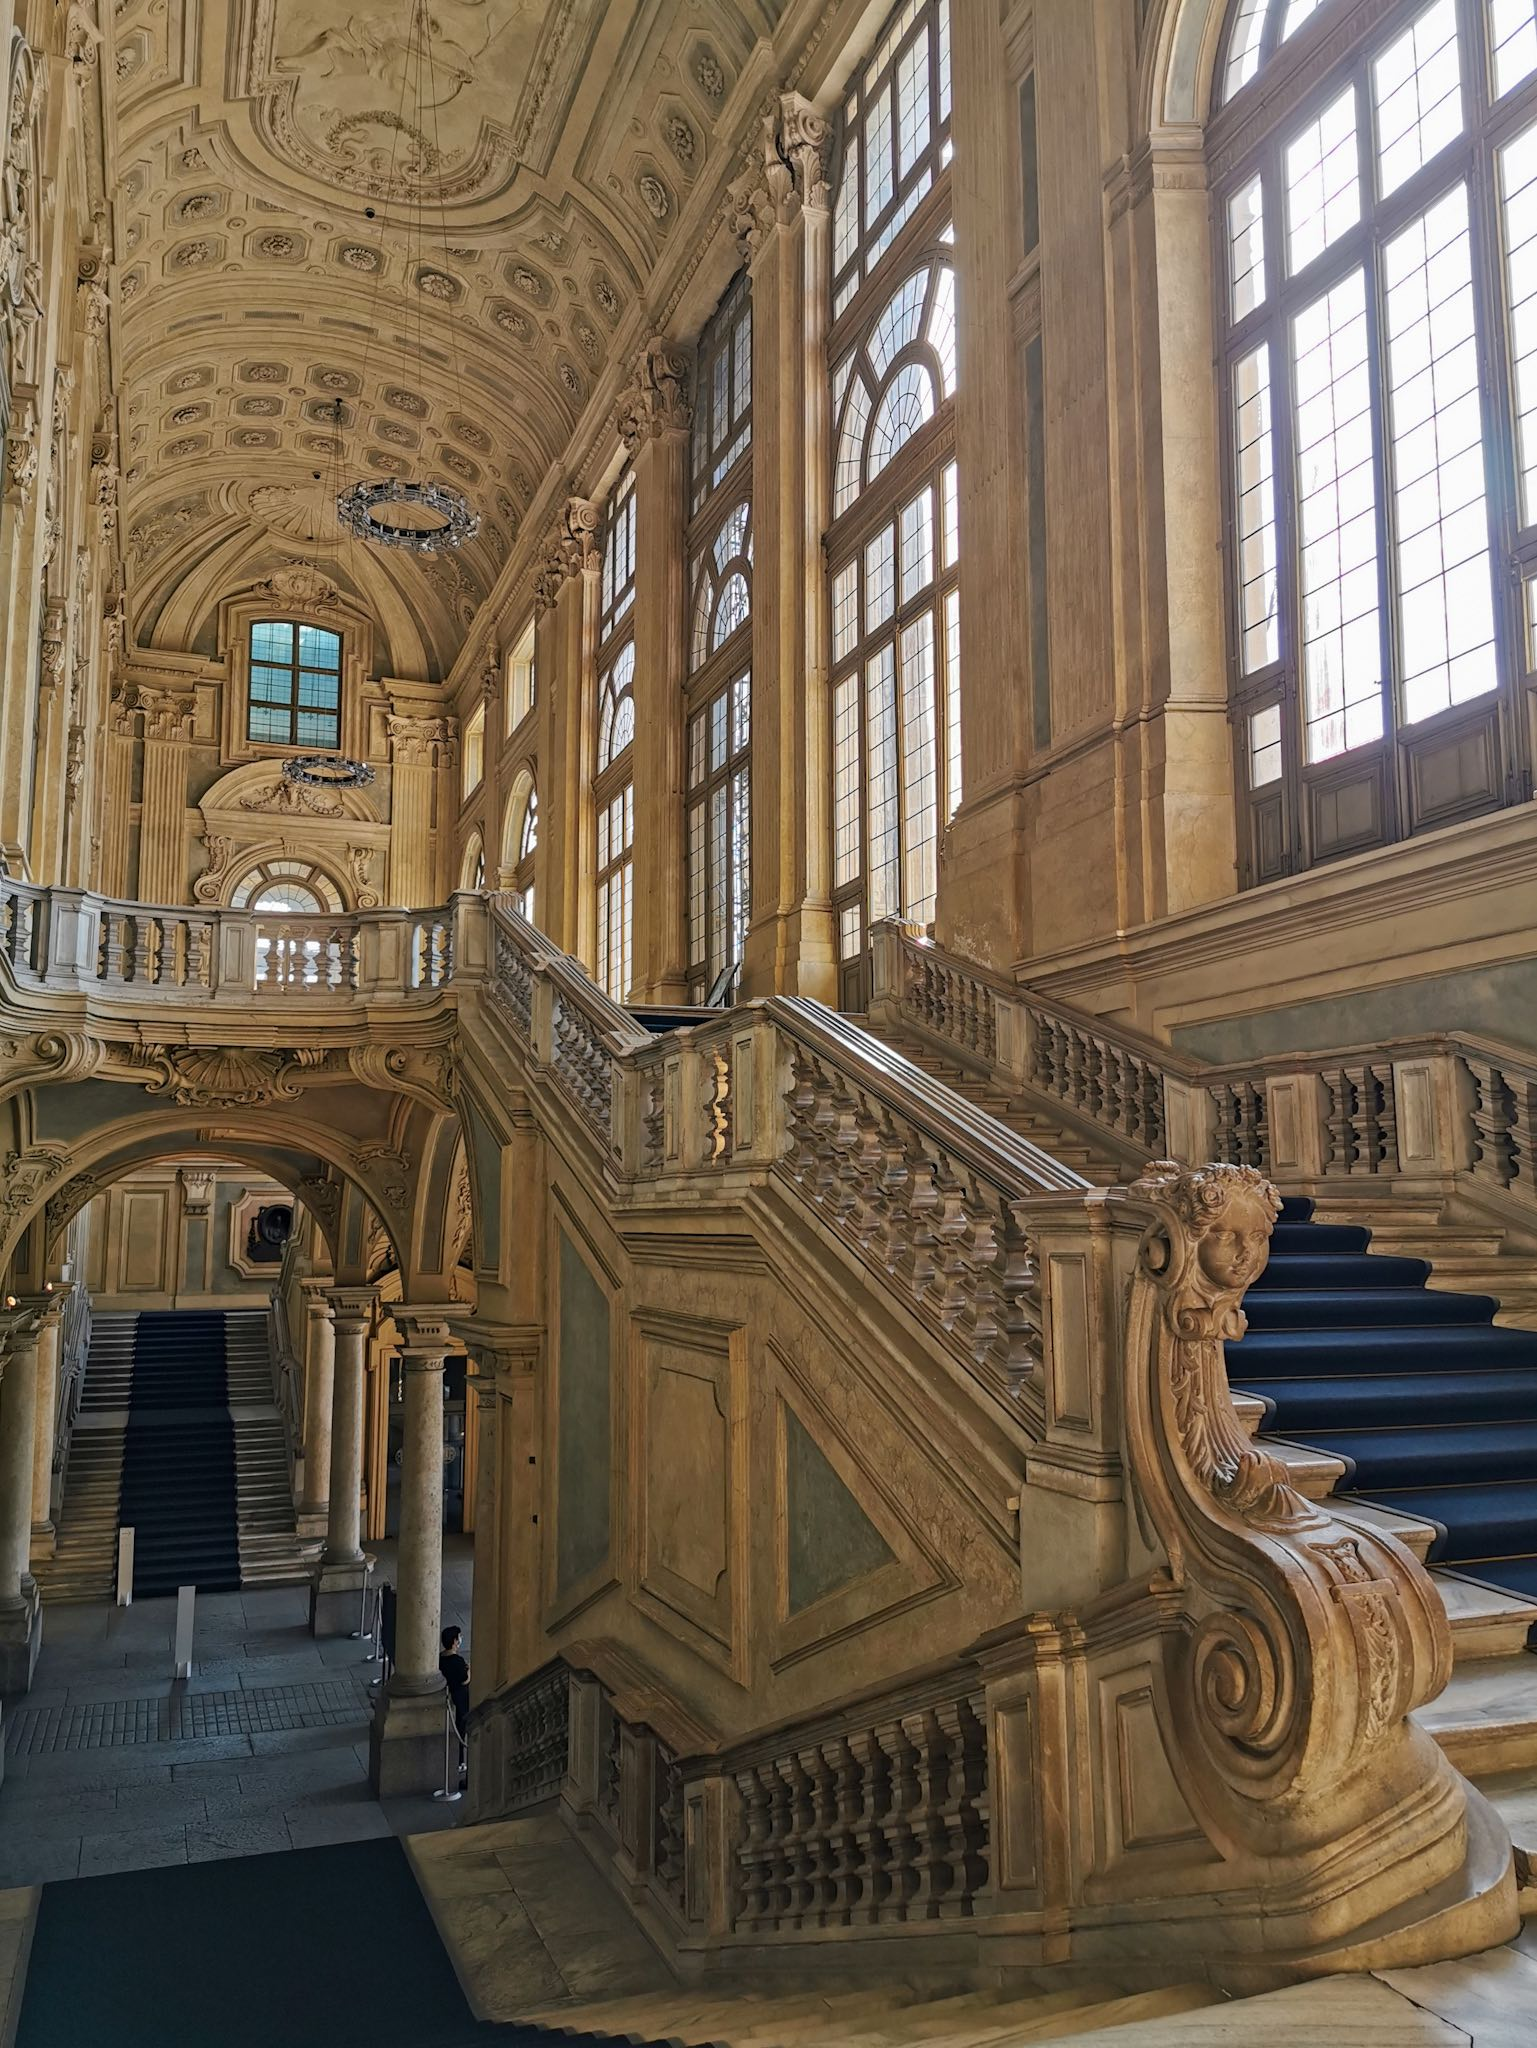 the grandiose staircase of Palazzo Madama in Turin